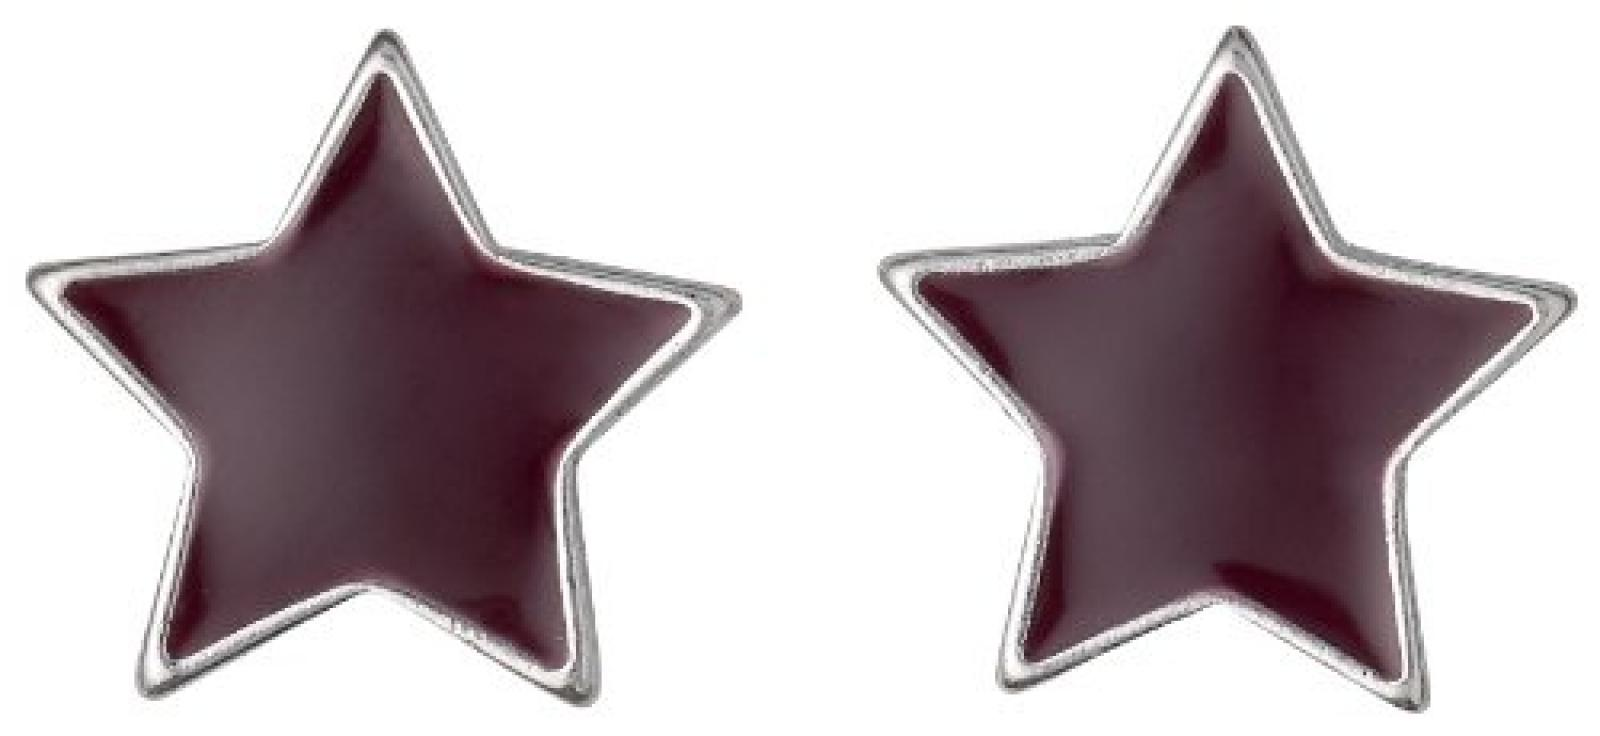 Pilgrim Jewelry Damen-Ohrstecker Messing Pilgrim Damen-Ohrstecker aus der Serie Enamel world versilbert,bordeaux 1.0 cm 251336313